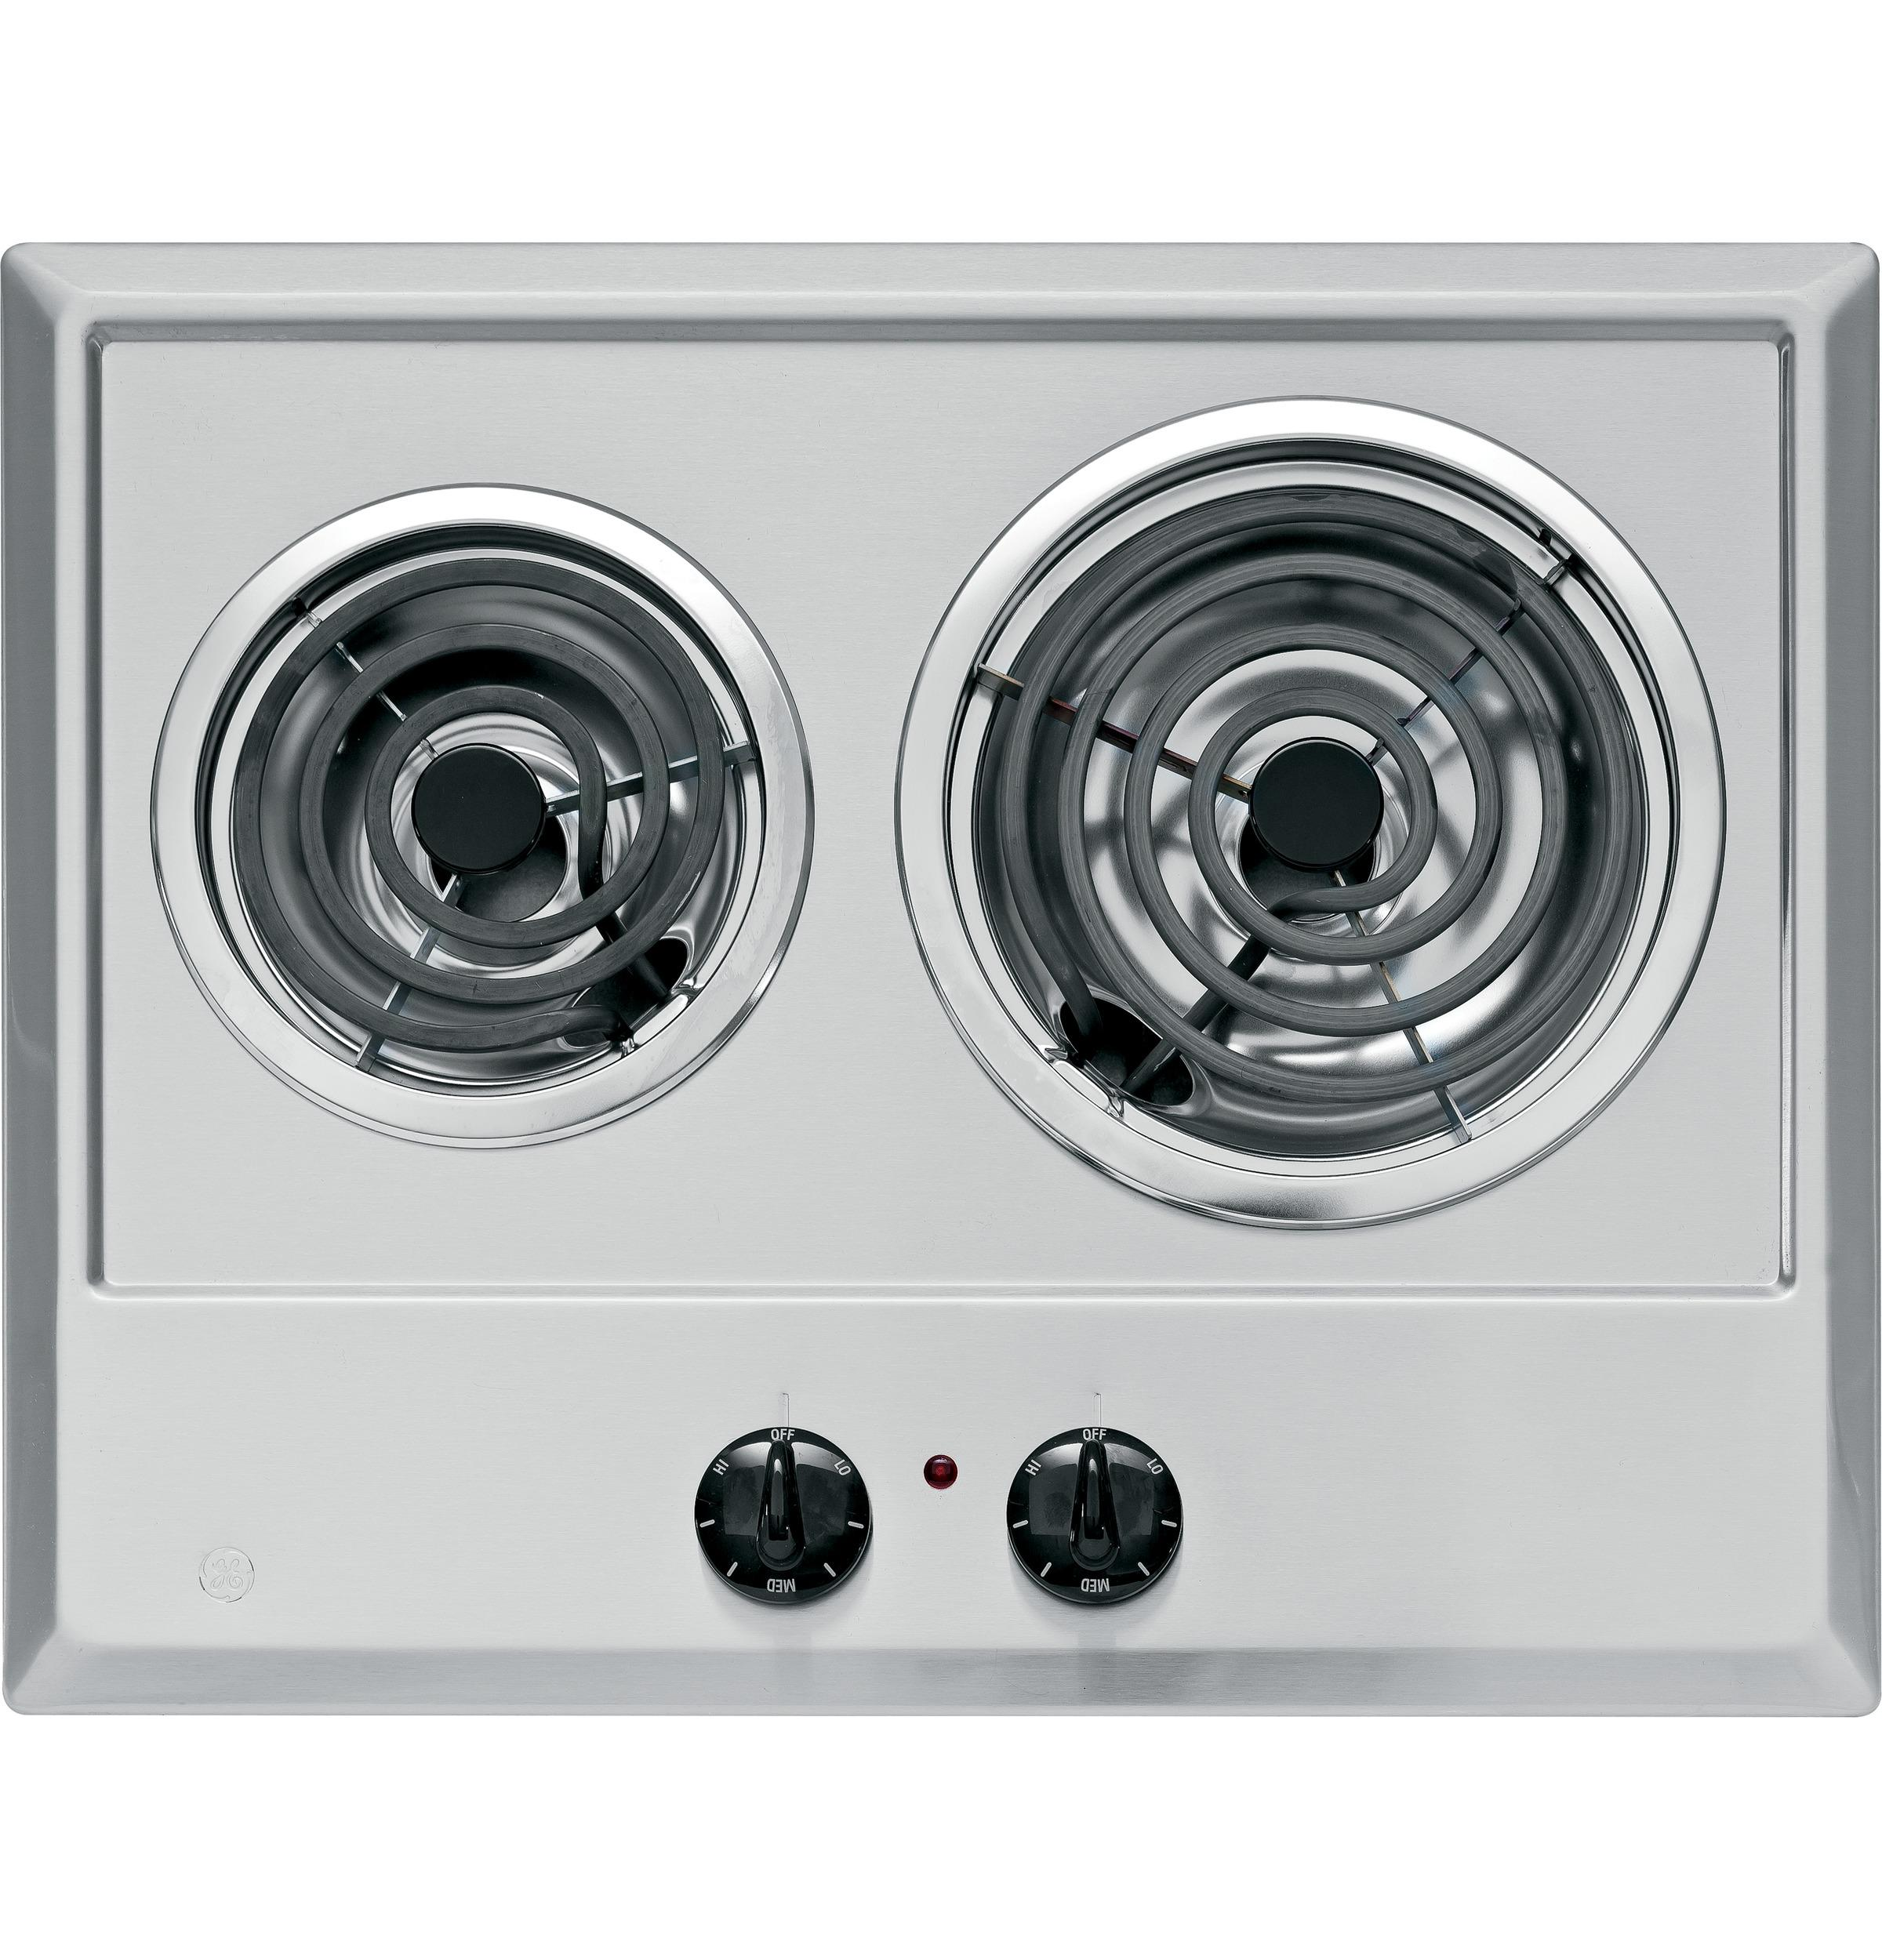 GE(R) Built-In Electric Cooktop